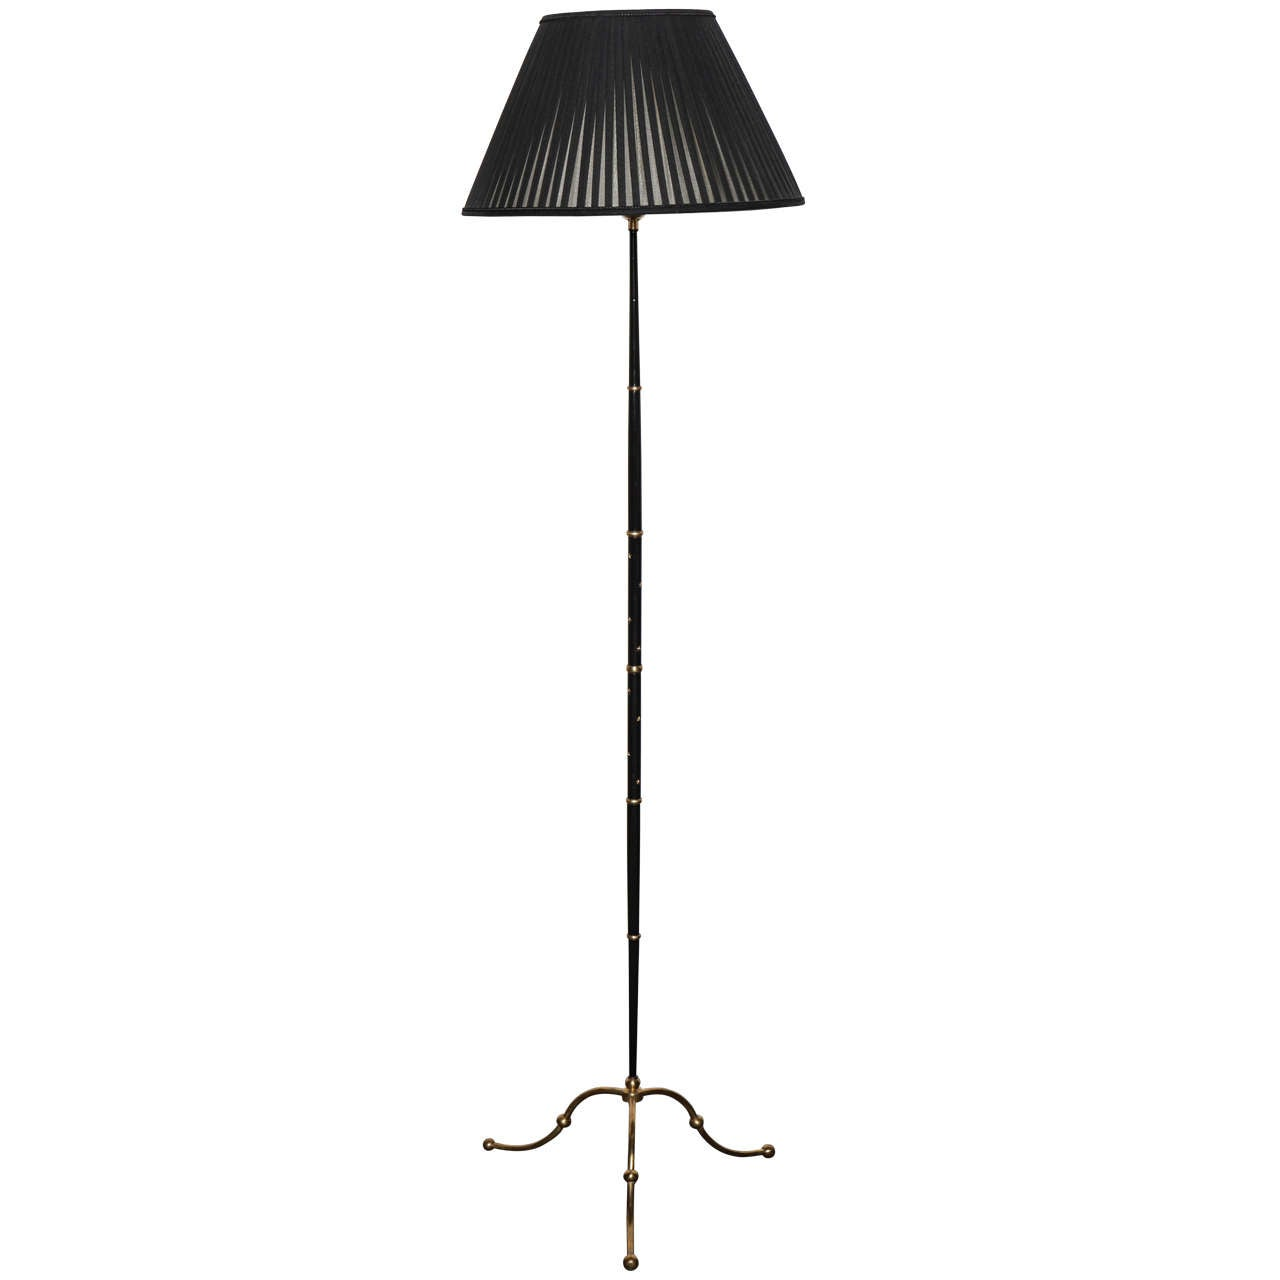 1940s floor lamp at 1stdibs for 1940s torchiere floor lamp